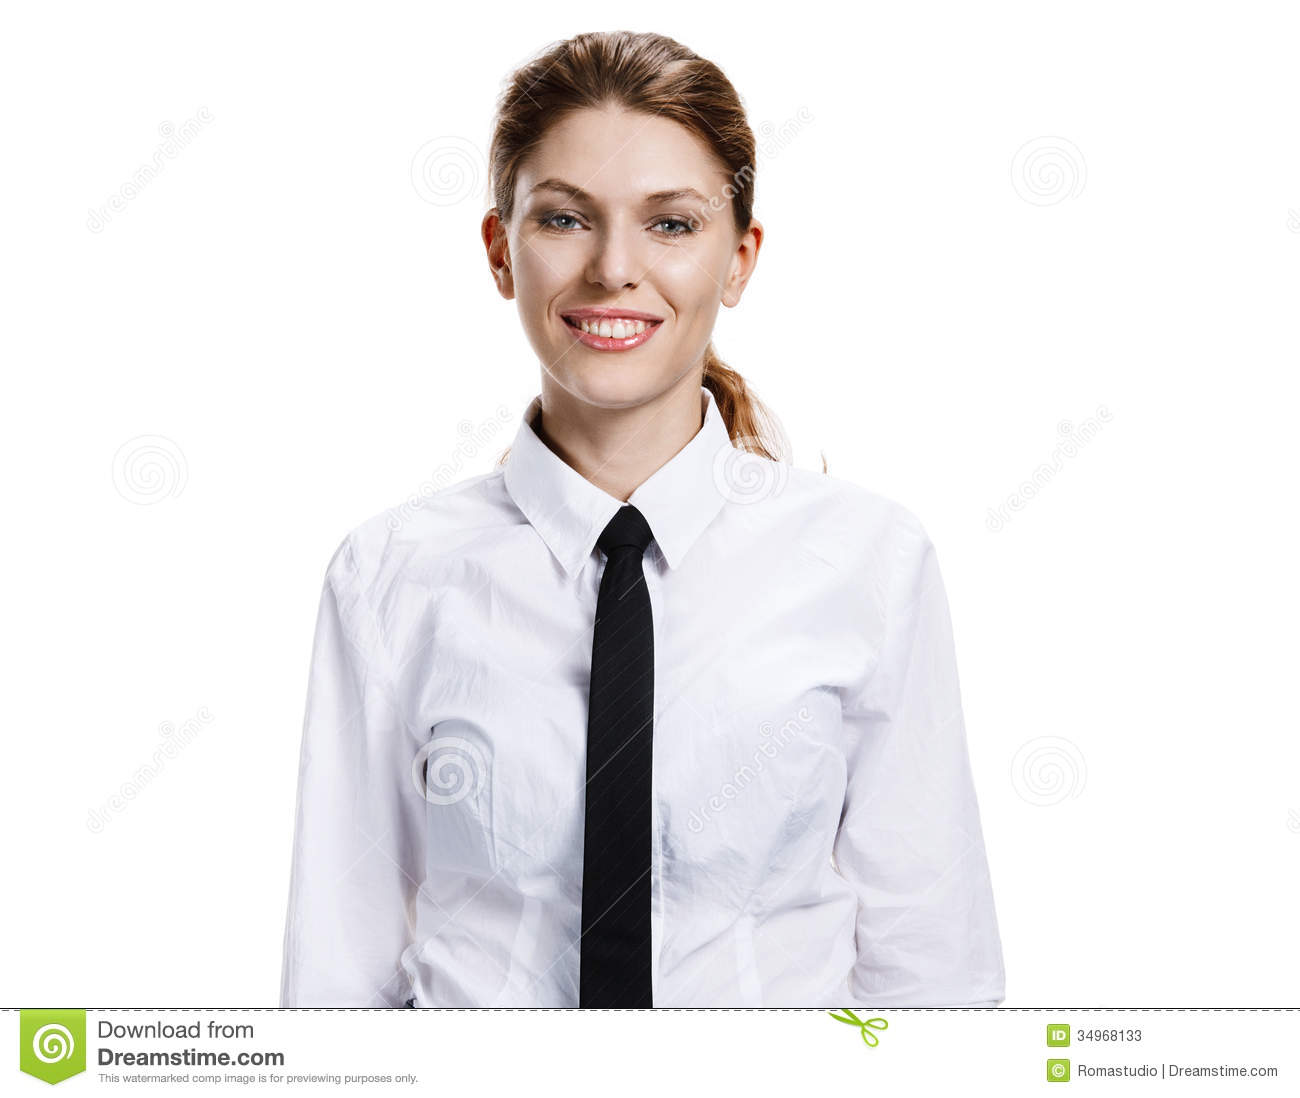 Woman In A White Shirt And Tie Stock Photos - Image: 34968133